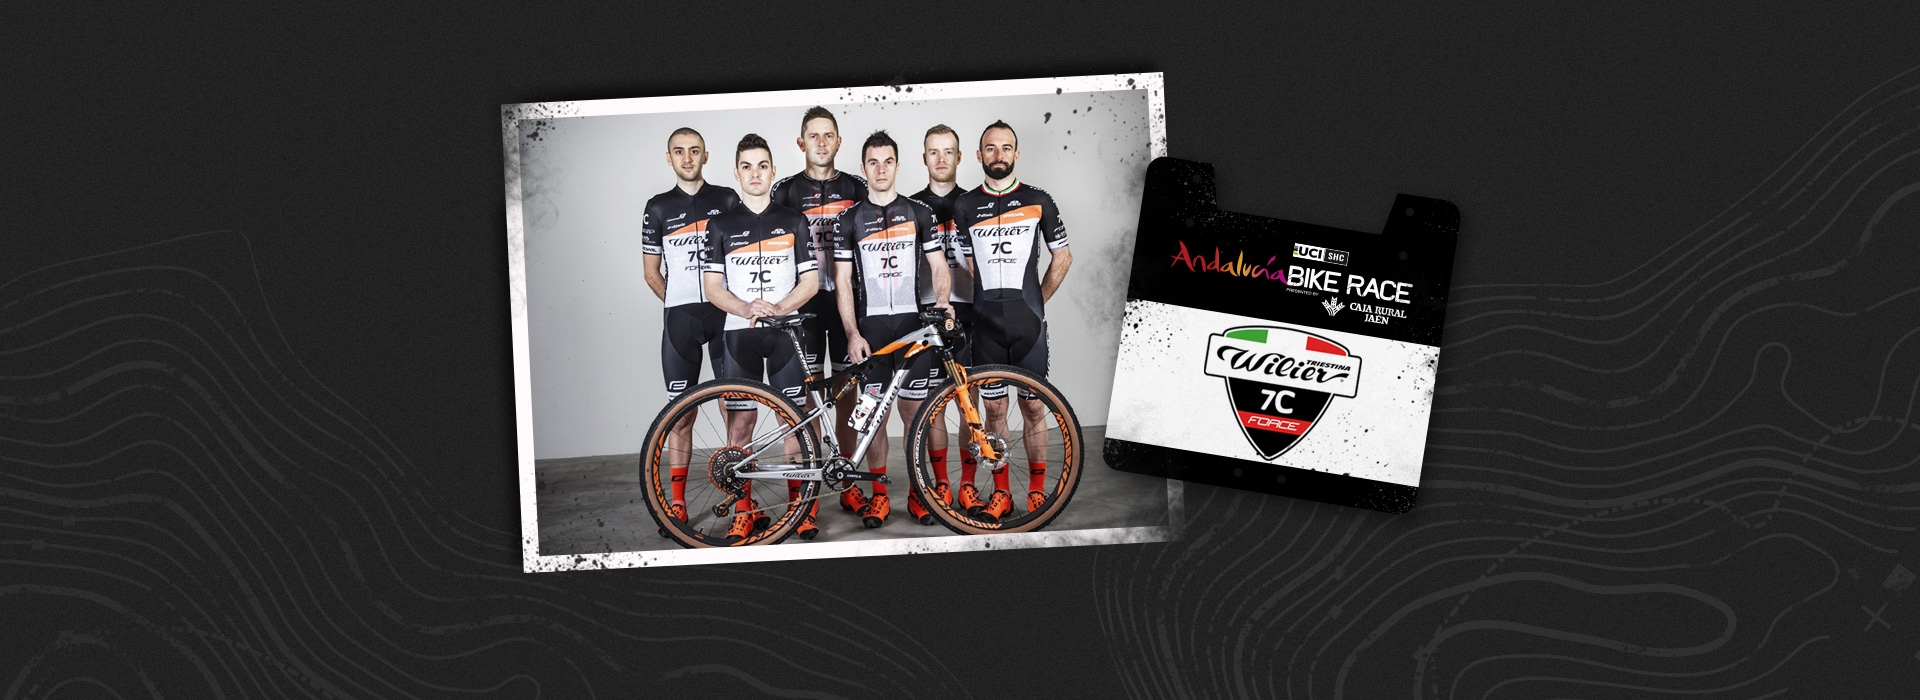 El Wilier Force 7C MTB Team a por todas